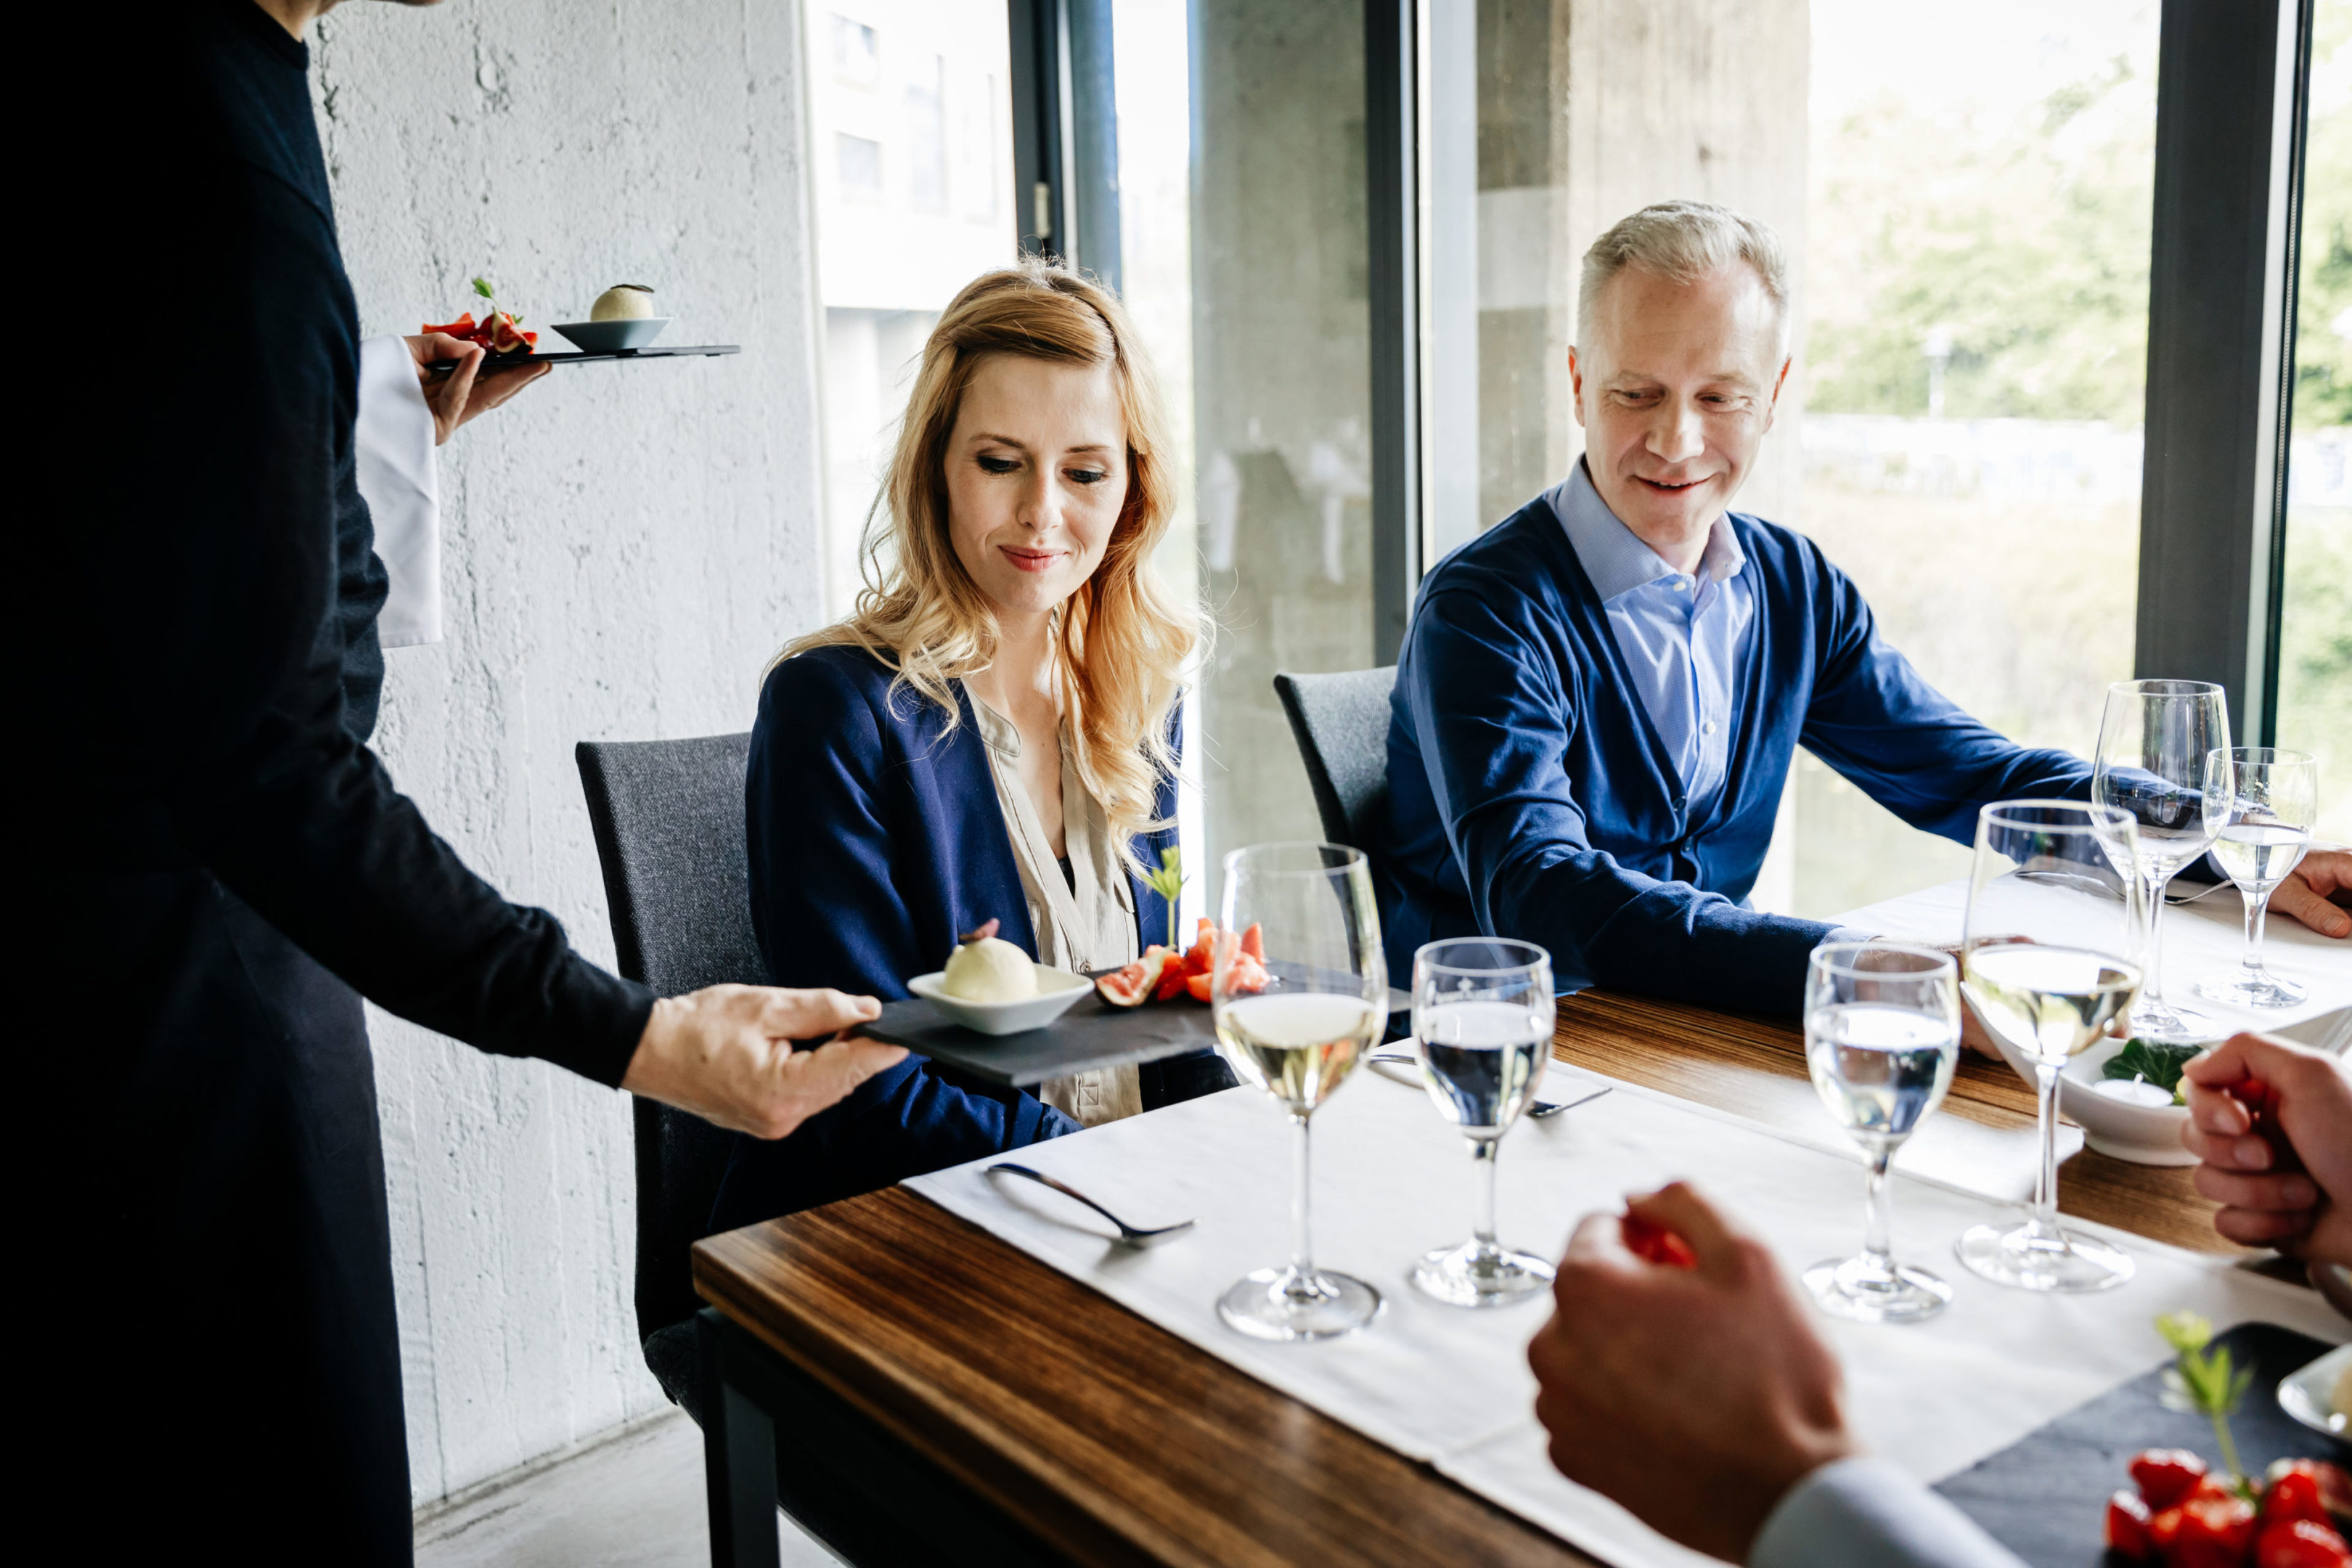 A waiter is serving food to a group of business colleagues having lunch together.